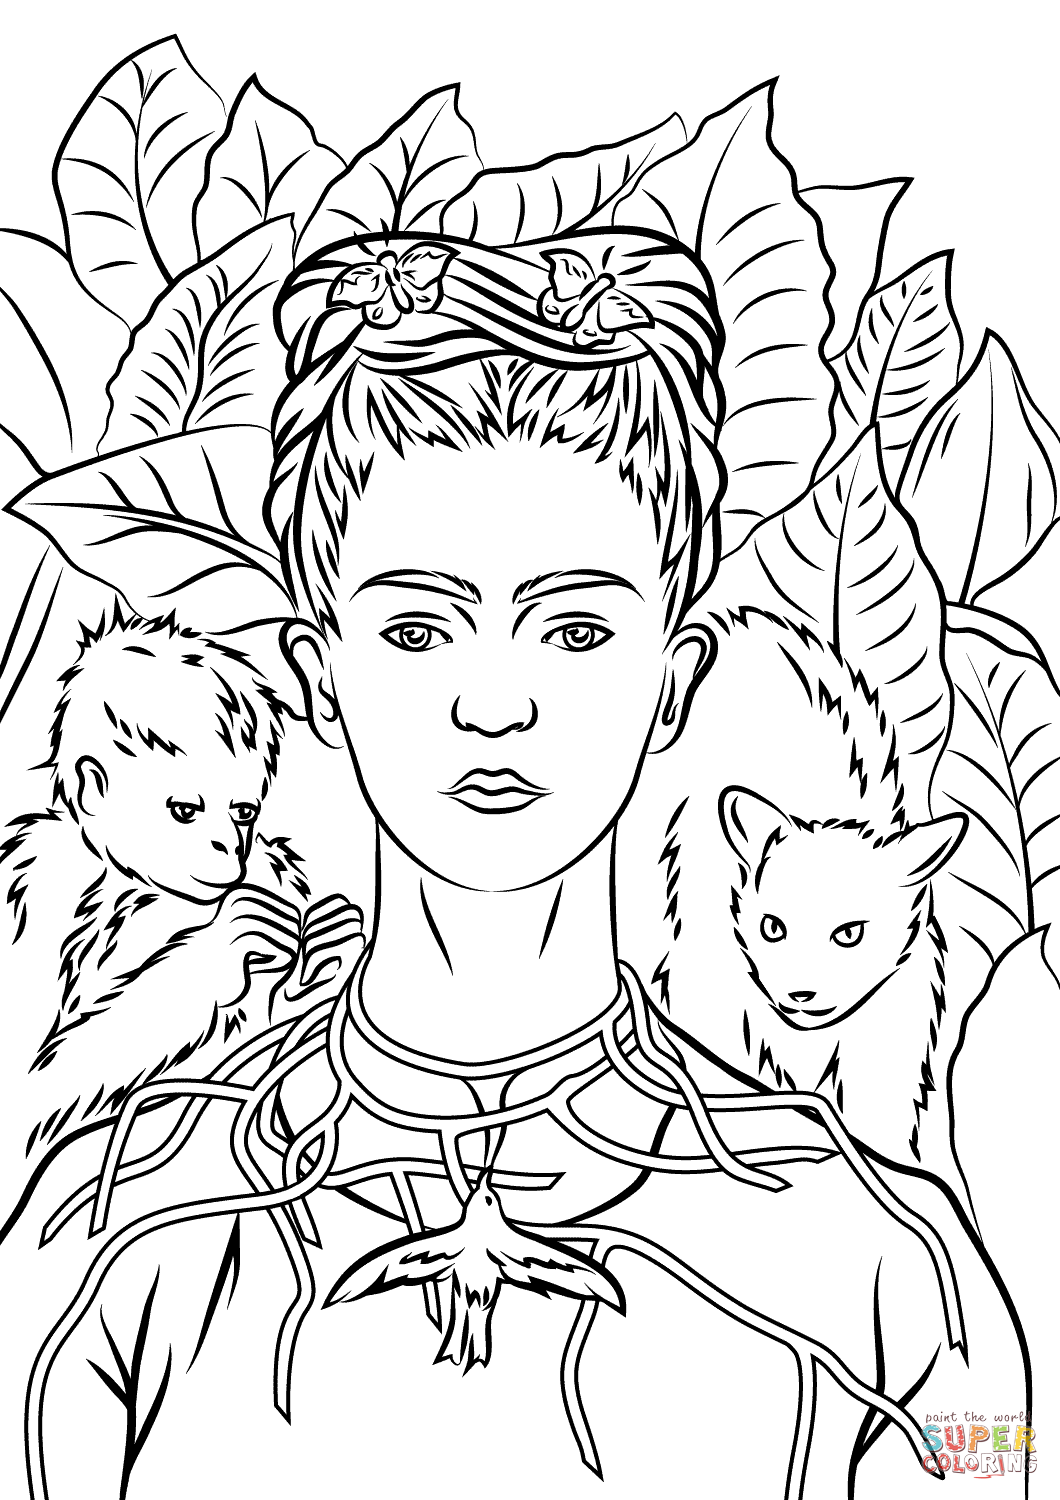 Self Portrait With Necklace Of Thorns By Frida Kahlo Coloring Page From Frida Kahlo Category